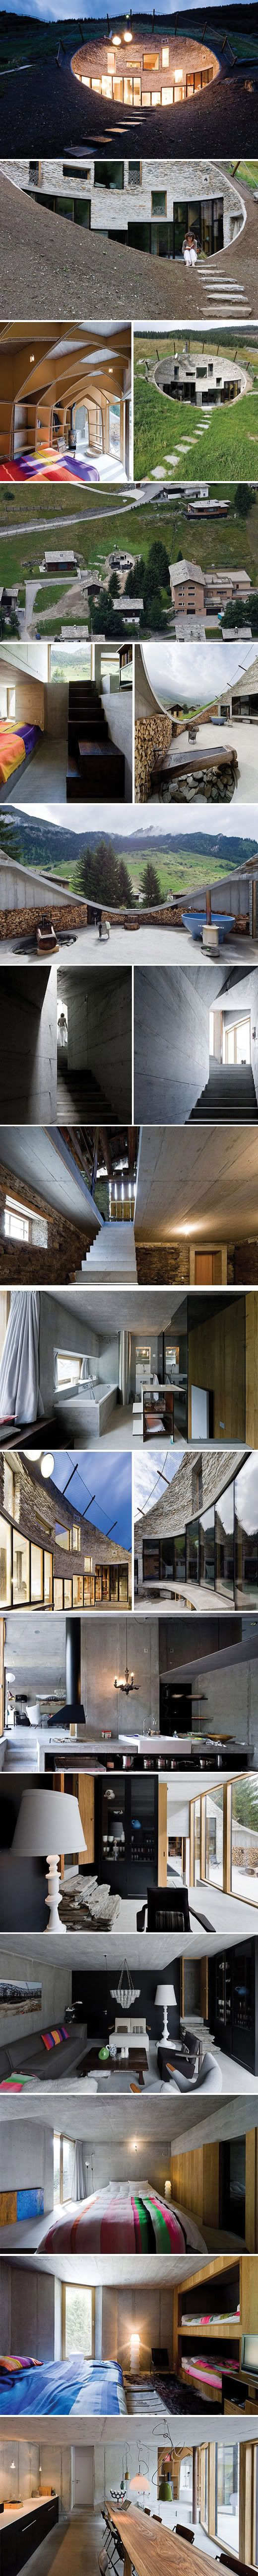 The 25 Best Unusual Houses Ideas On Pinterest Architecture